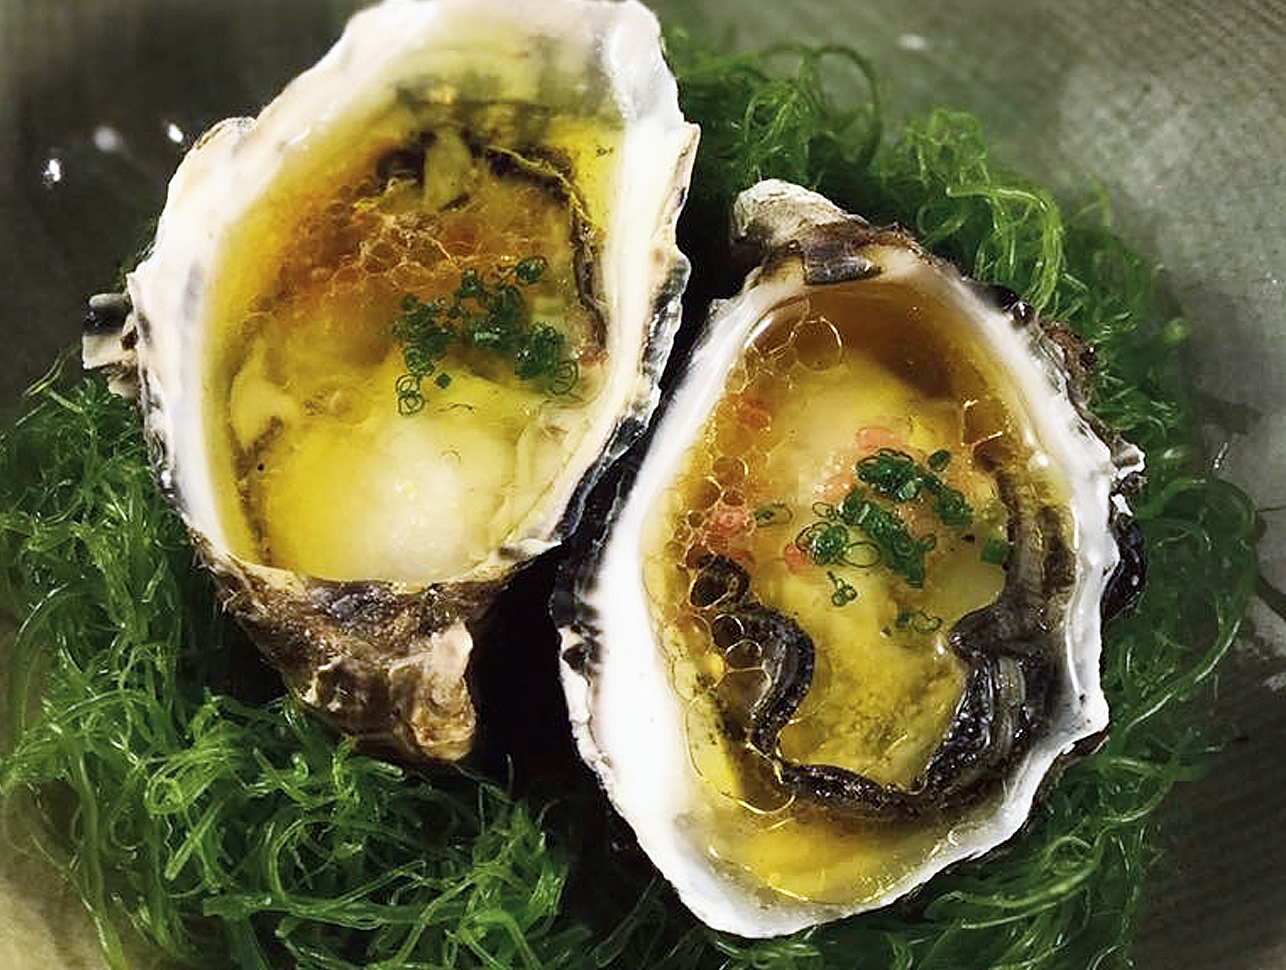 Tasmanian Pacific Oysters with rice wine vinaigrette at Tetsuya's, which is owned by Tetsuya Wakuda (below)